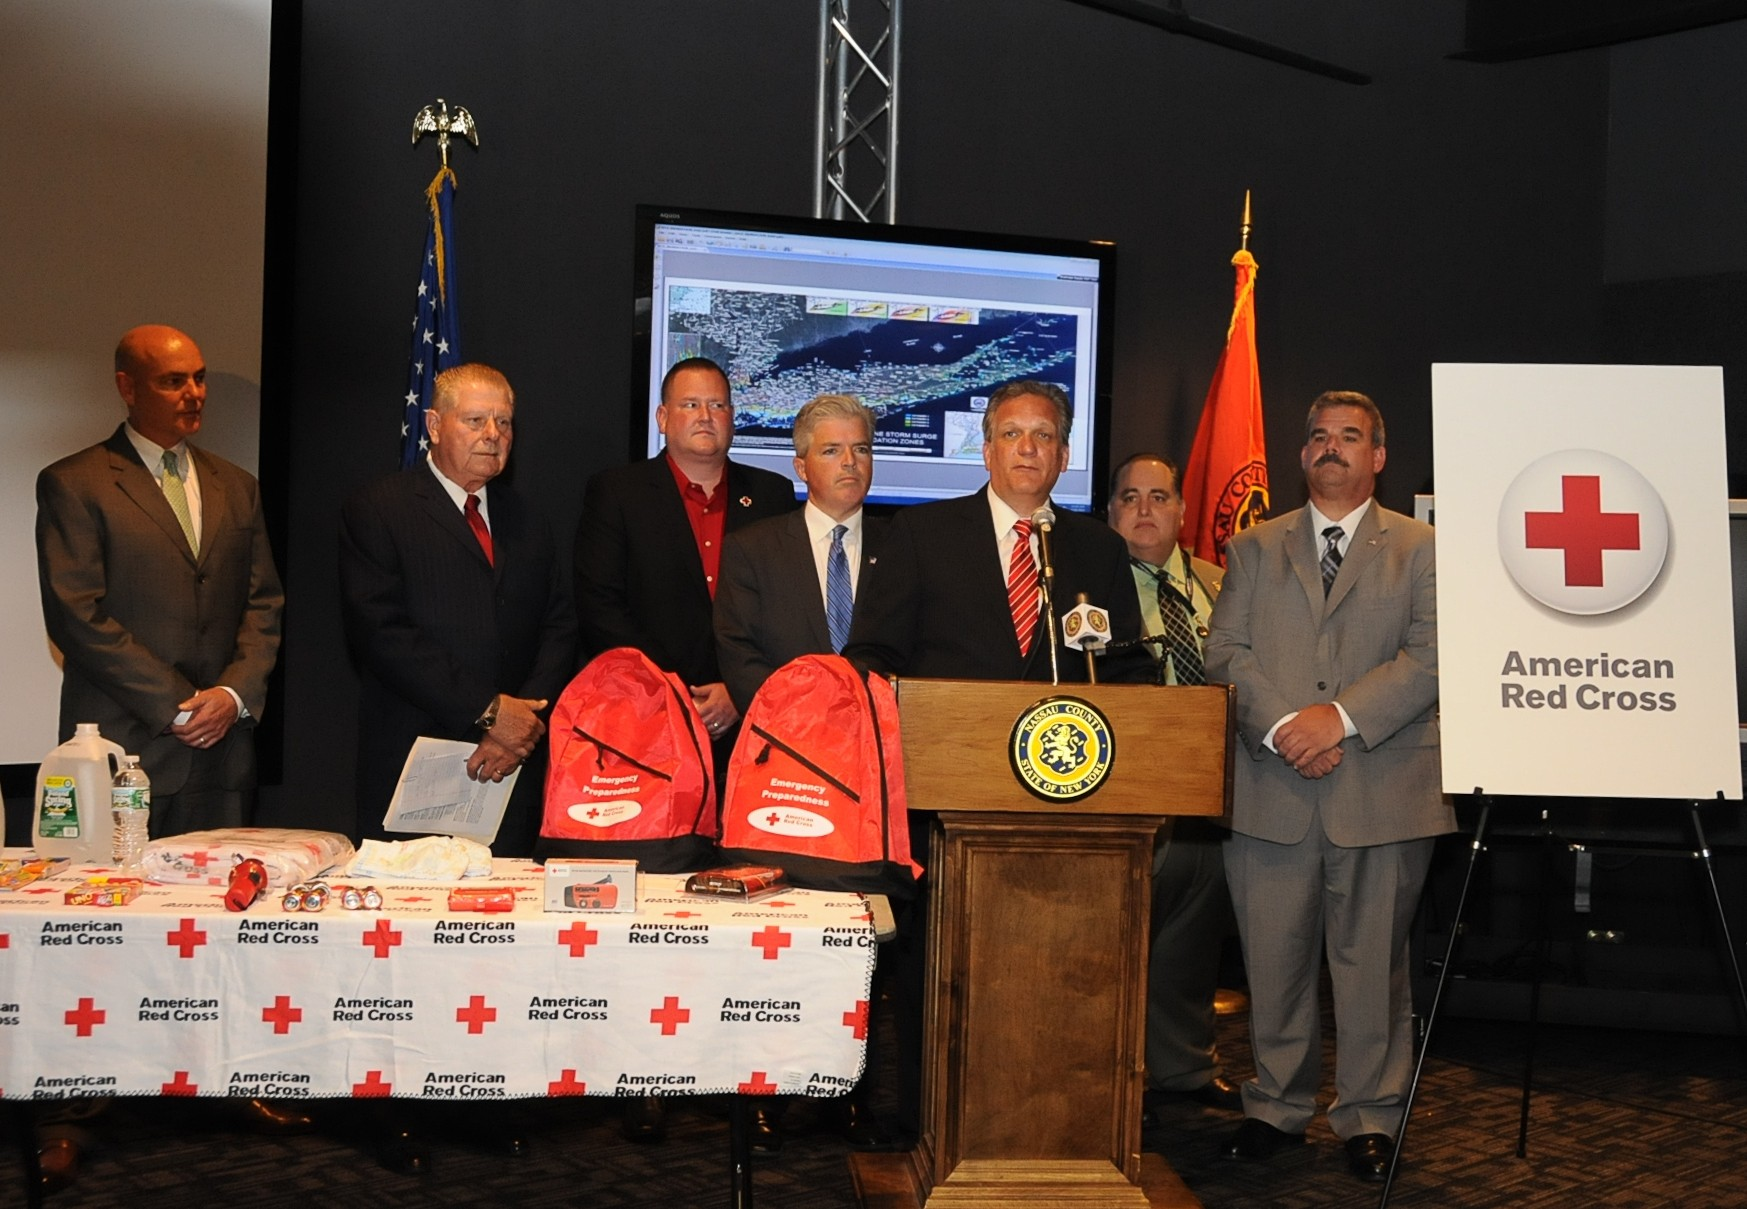 Nassau and Suffolk county officials gathered with leaders of the American Red Cross on Long Island last Friday in Bethpage to urge residents to prepare now for future severe storms. From left to right were Chris Kutner, co-chairman of the American Red Cross on Long Island�s Board of Directors; Joe Williams, commissioner of the Suffolk County Department of Fire, Rescue and Emergency Services; John Miller, chief executive officer of the American Red Cross on Long Island; Steve Bellone, Suffolk County executive; Ed Mangano, Nassau County executive; Craig Craft, commissioner of the Nassau County Office of Emergency Management; Scott Tusa, chief fire marshal of Nassau County.